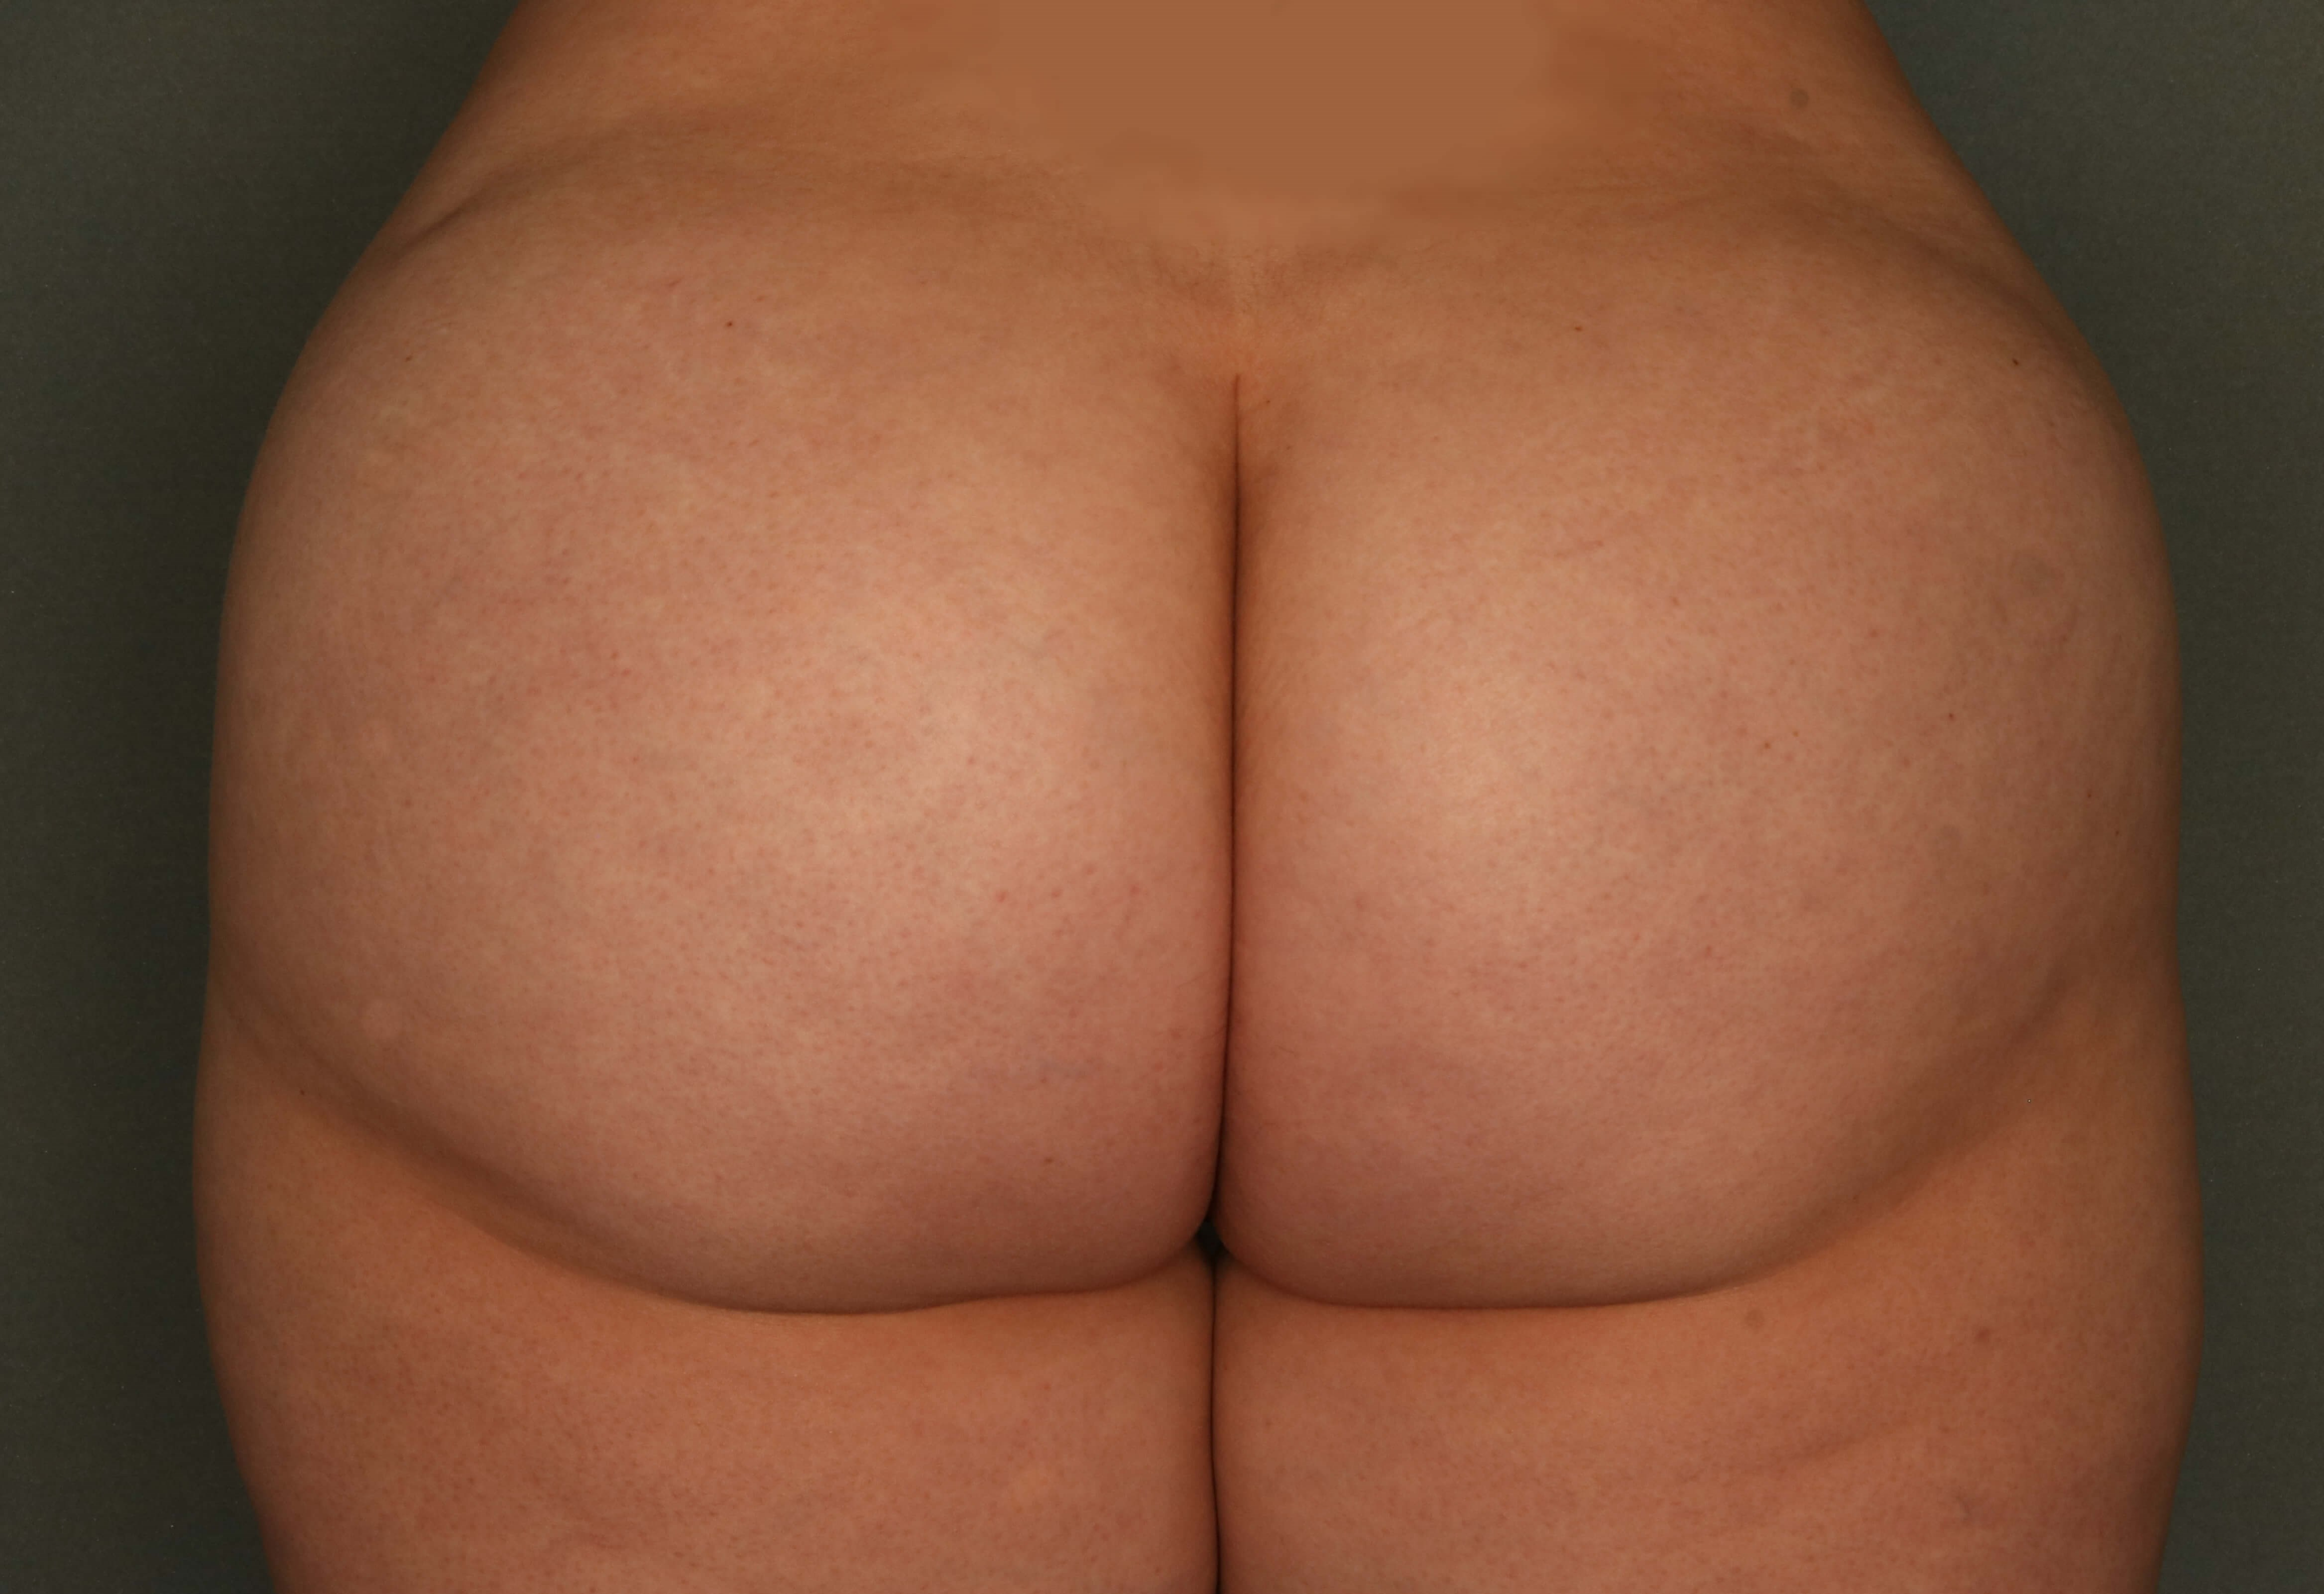 Fat transfer to Buttock After